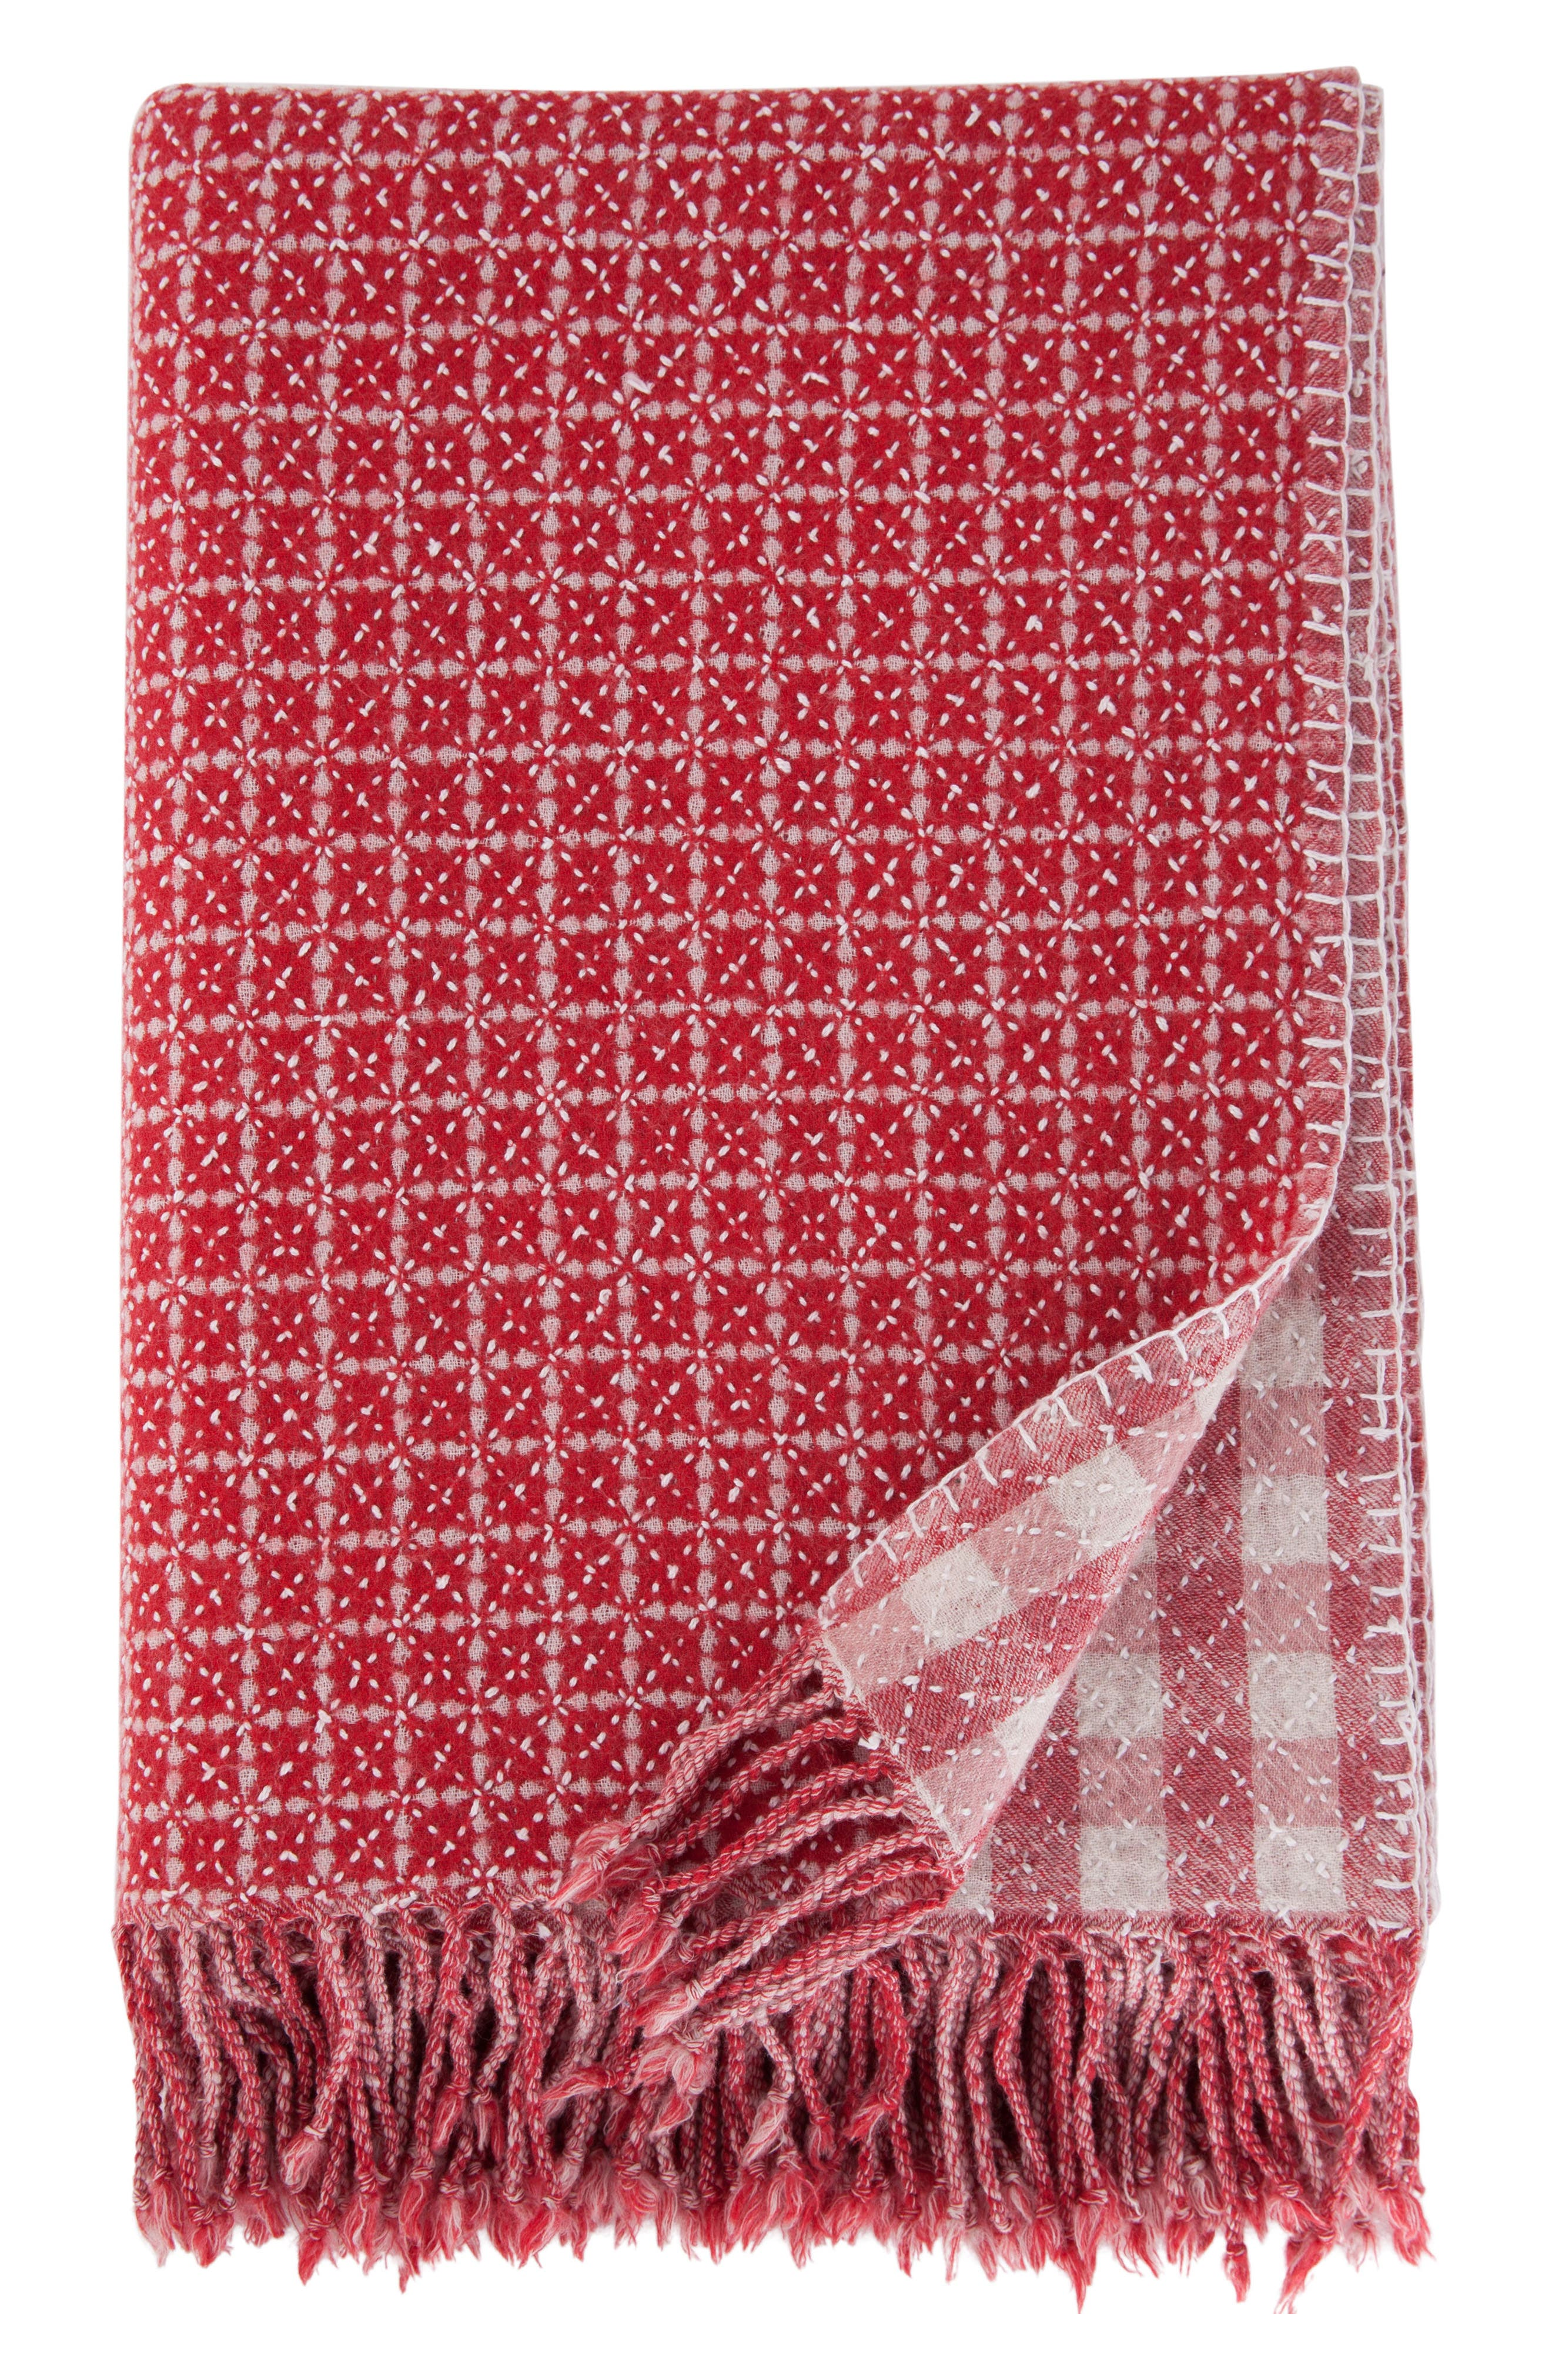 Reversible Hand Embroidered Merino Wool Blanket,                             Main thumbnail 1, color,                             RED